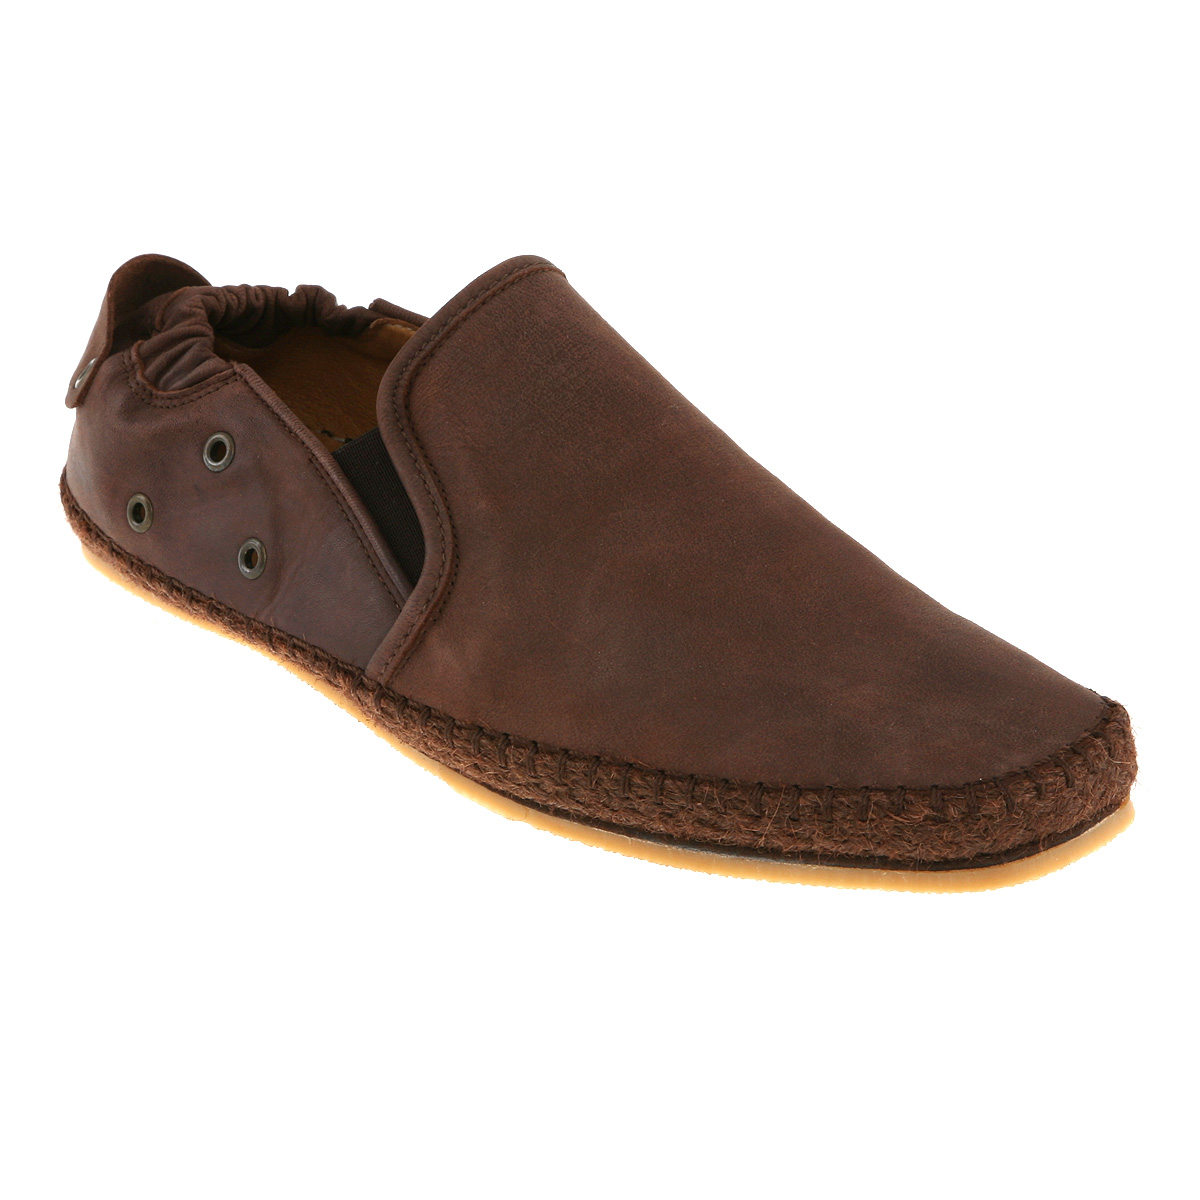 Poste Brown Leather Shoes